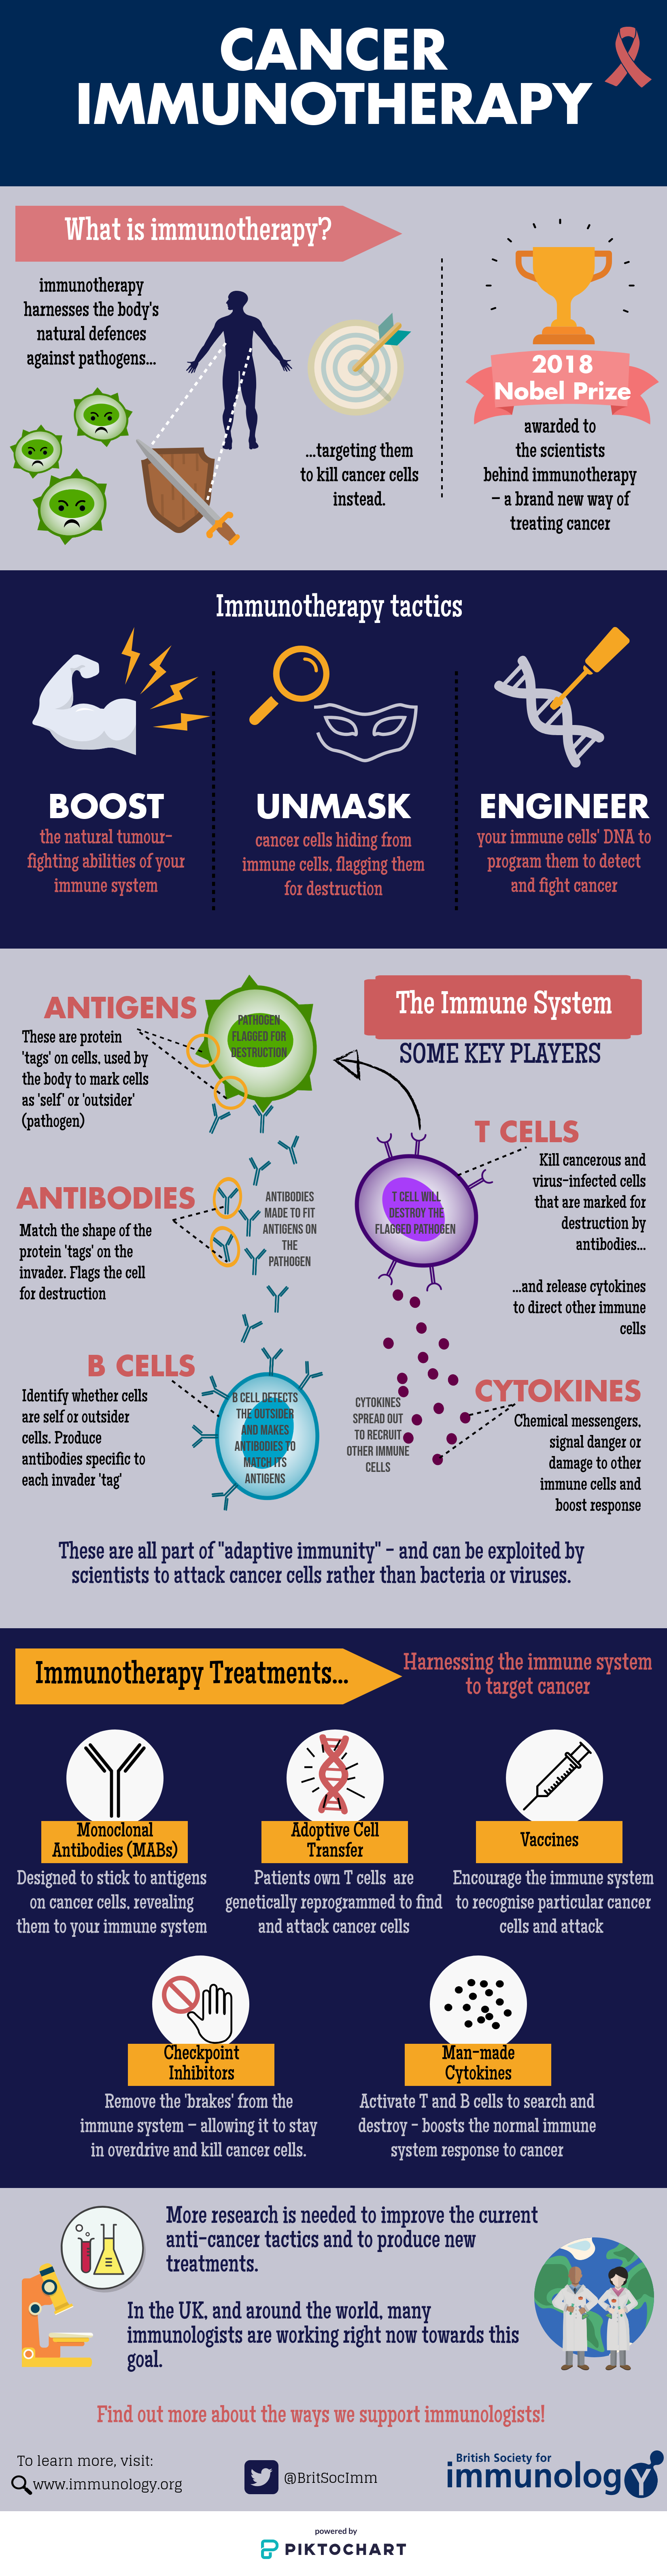 Cancer immunotherapy infographic BSI